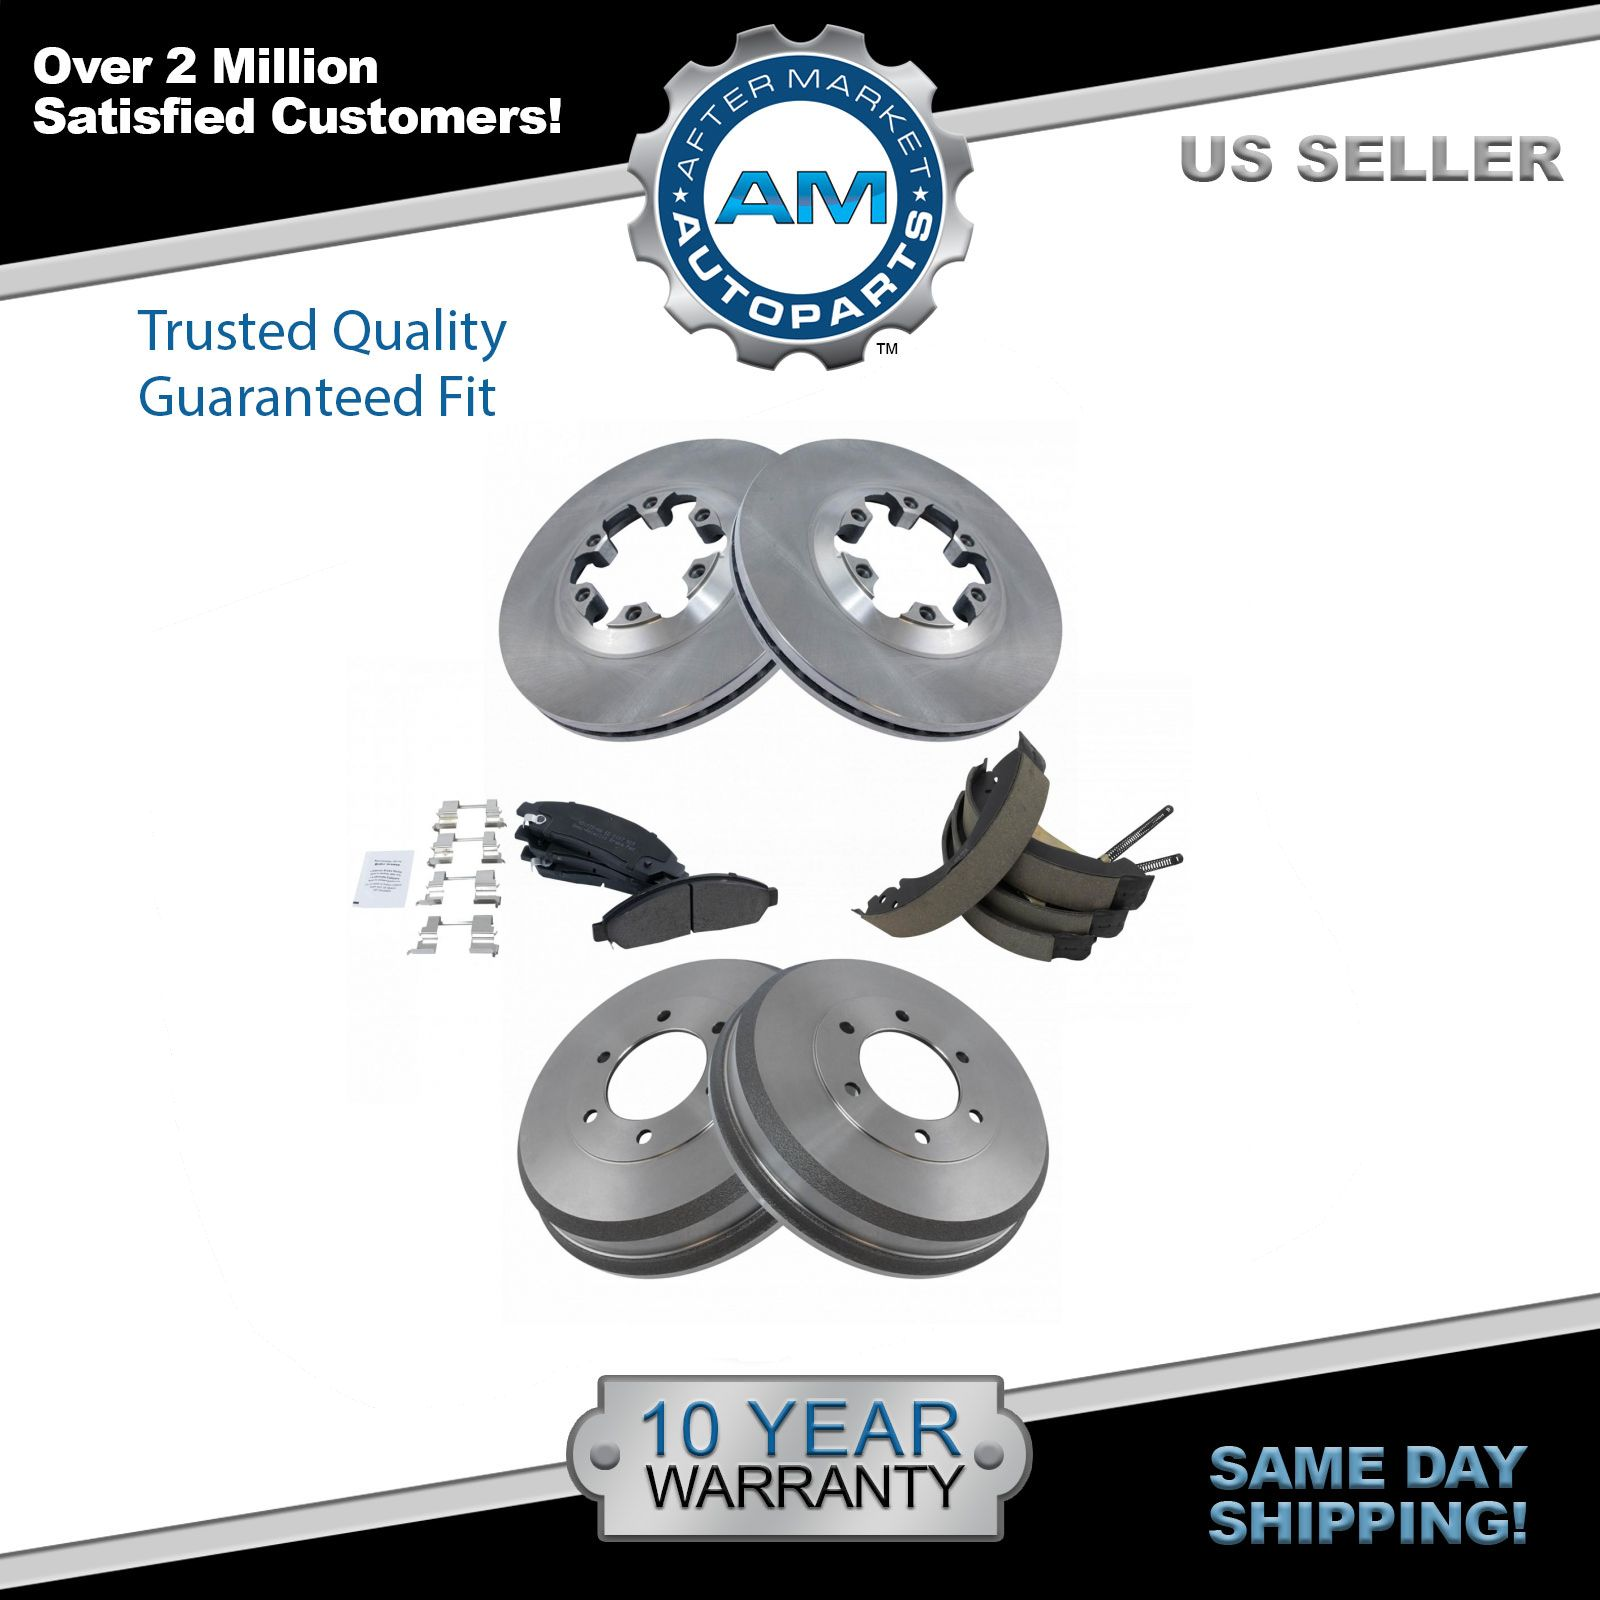 Nakamoto brake shoes drums pad rotor complete kit for chevy isuzu pickup truck